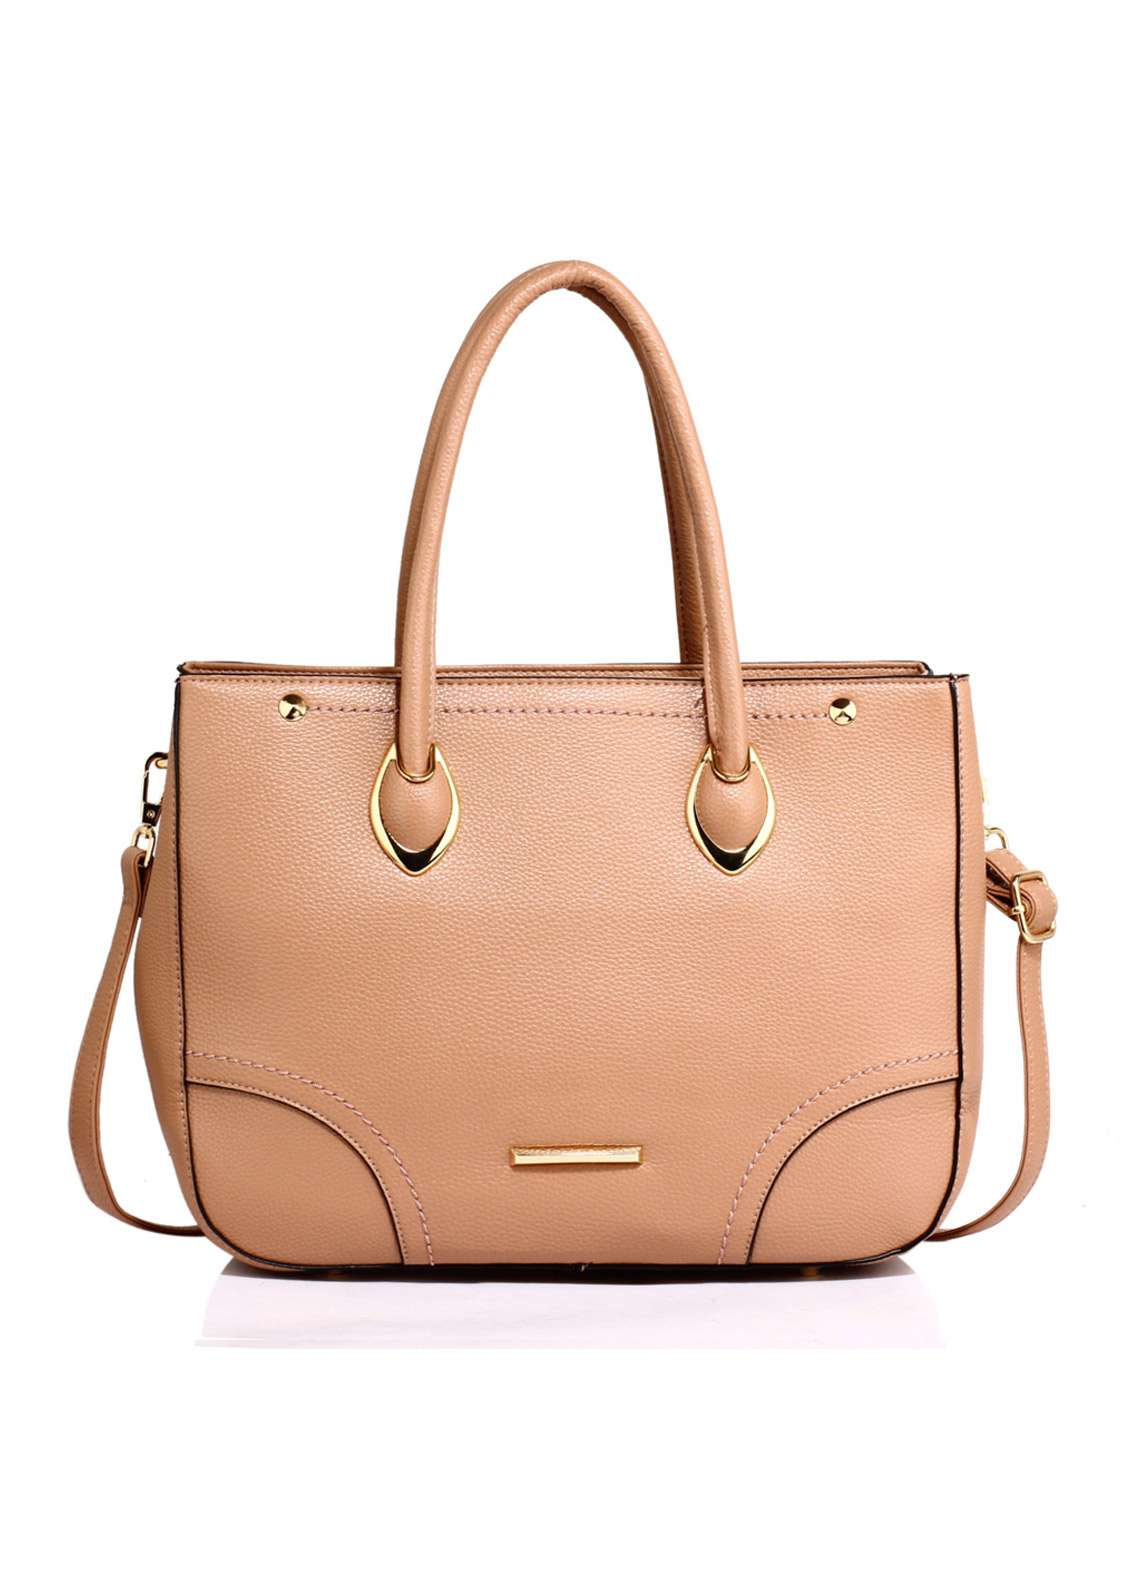 Anna Grace London Faux Leather Tote  Bags for Women Nude